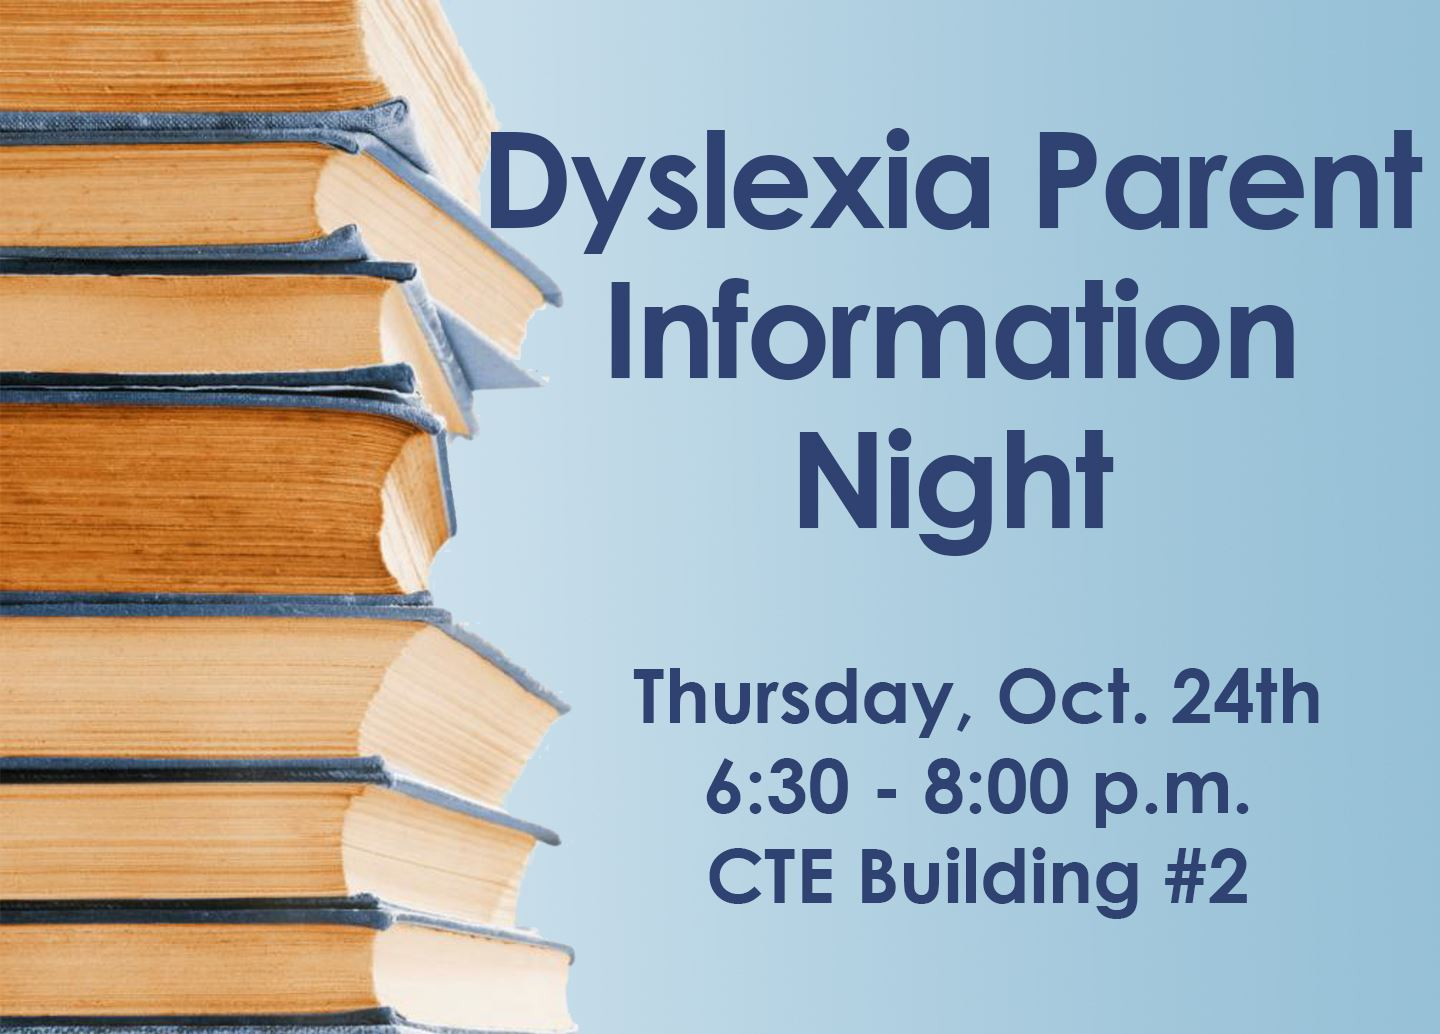 Dyslexia Parent Information Night on Oct. 24 from 6:30-8:00 PM at CTE Building #2